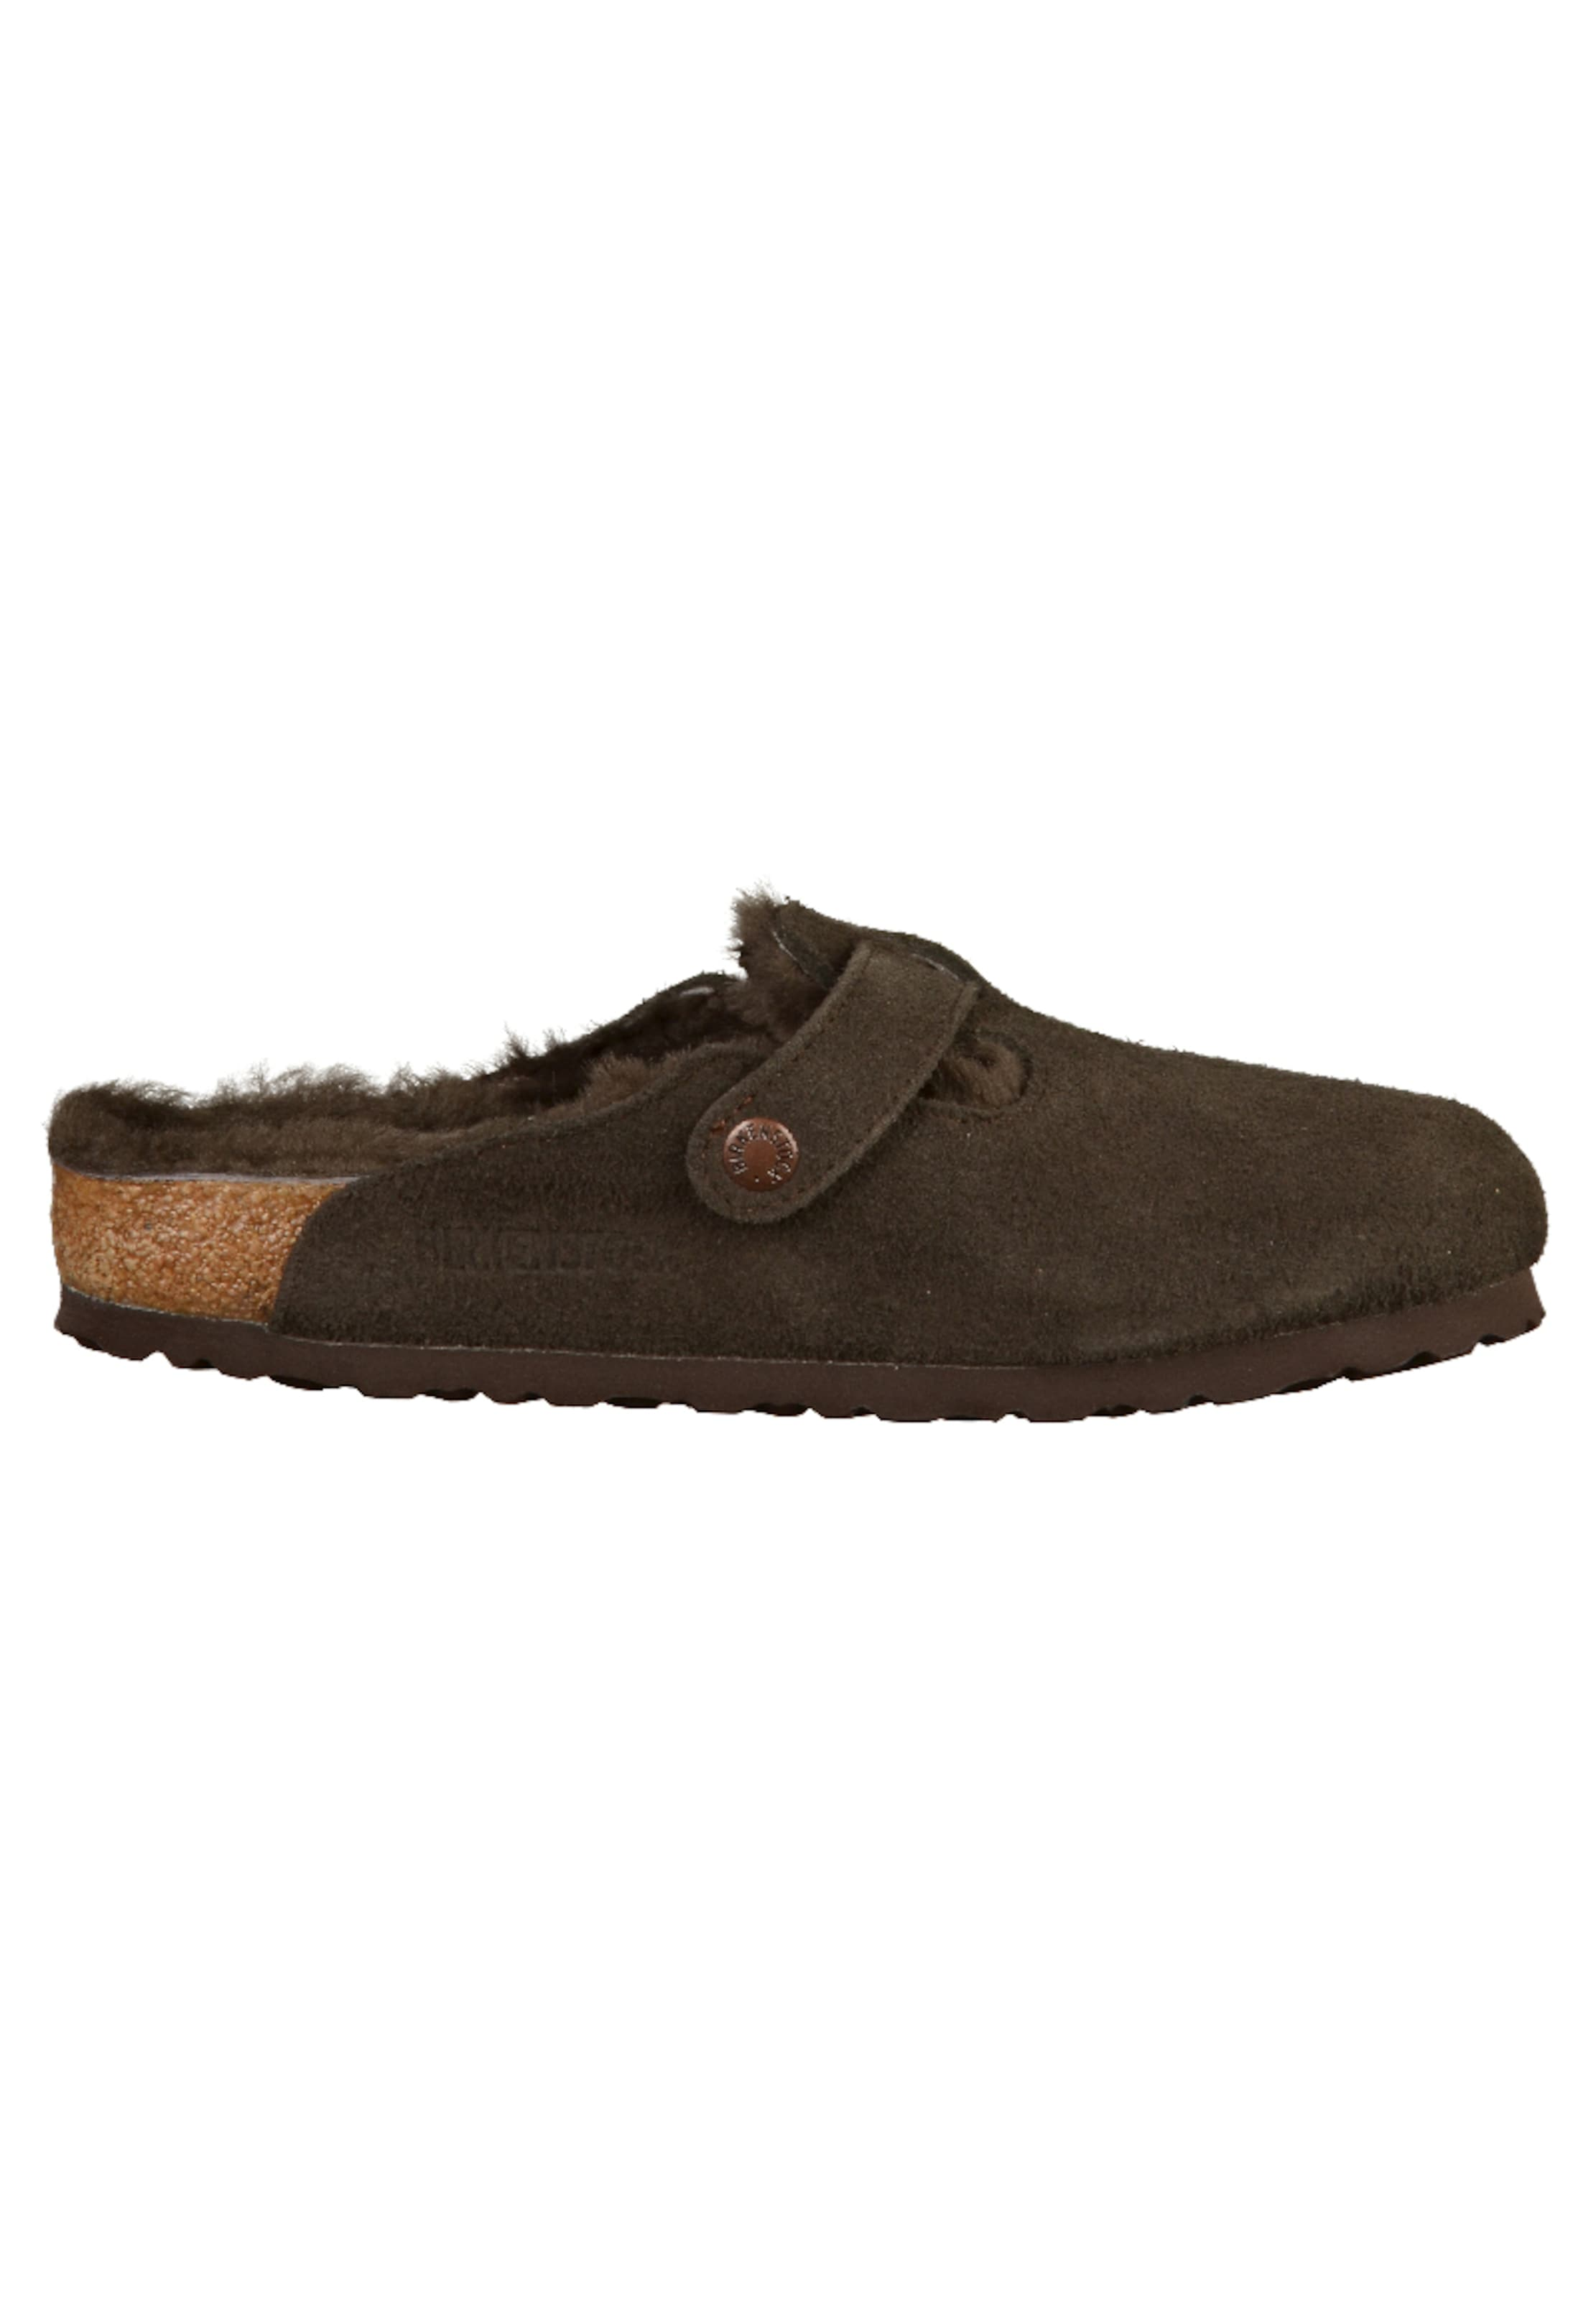 Normal Clogs 'boston Fur' In Braun Birkenstock CxoerWdB